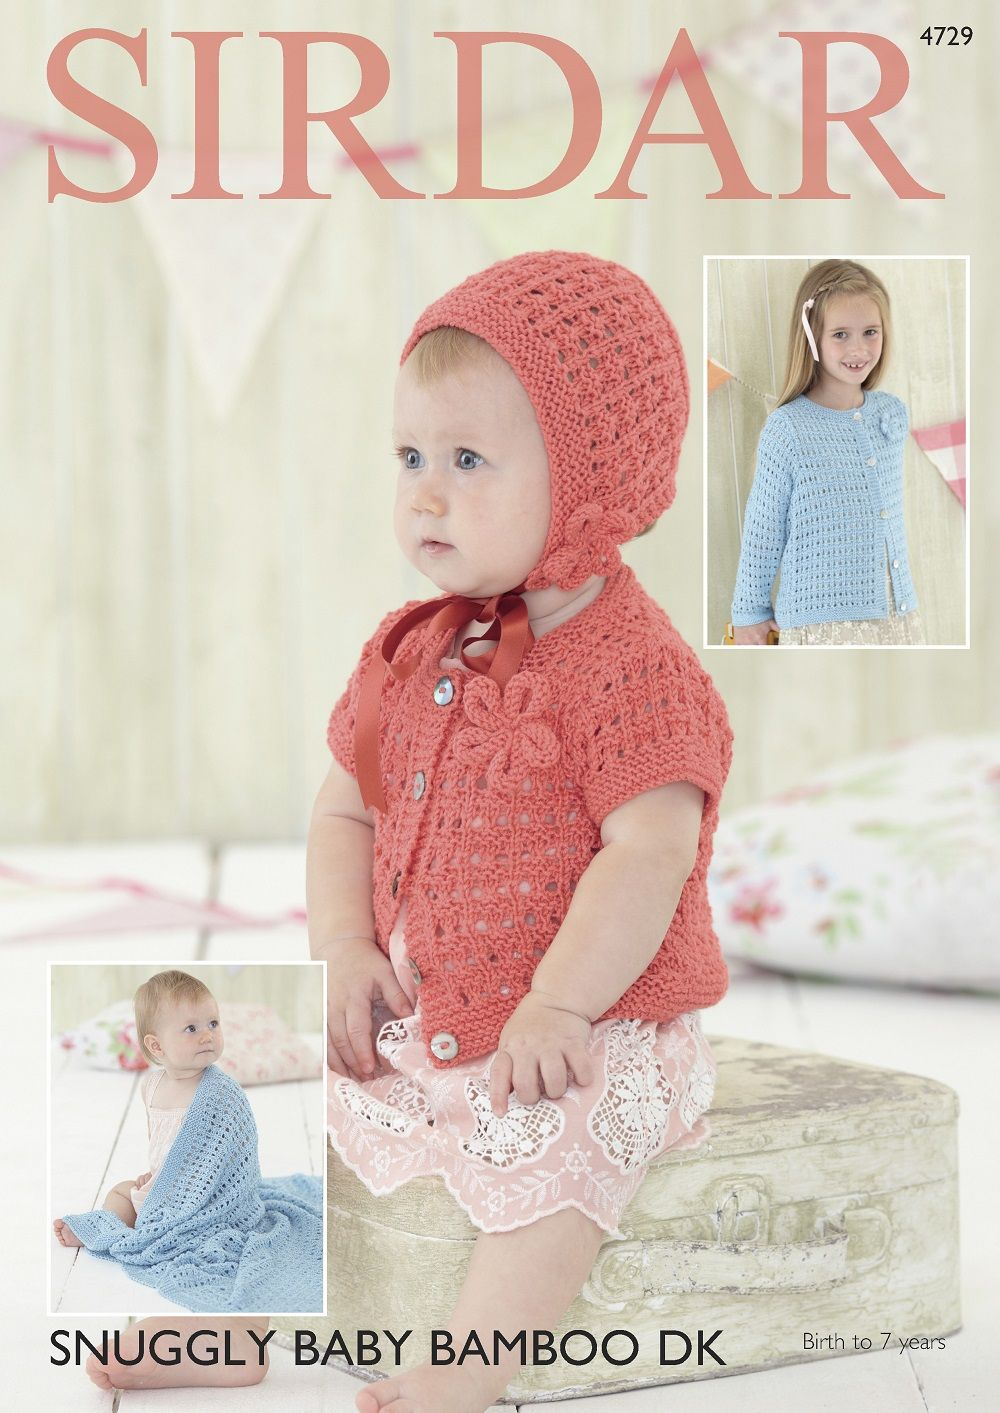 Baby Girl Blanket Knitting Patterns Sirdar Girls Cardigans Bonnet Blanket Knitting Pattern In Snuggly Ba Bamboo Dk 4729p Pdf